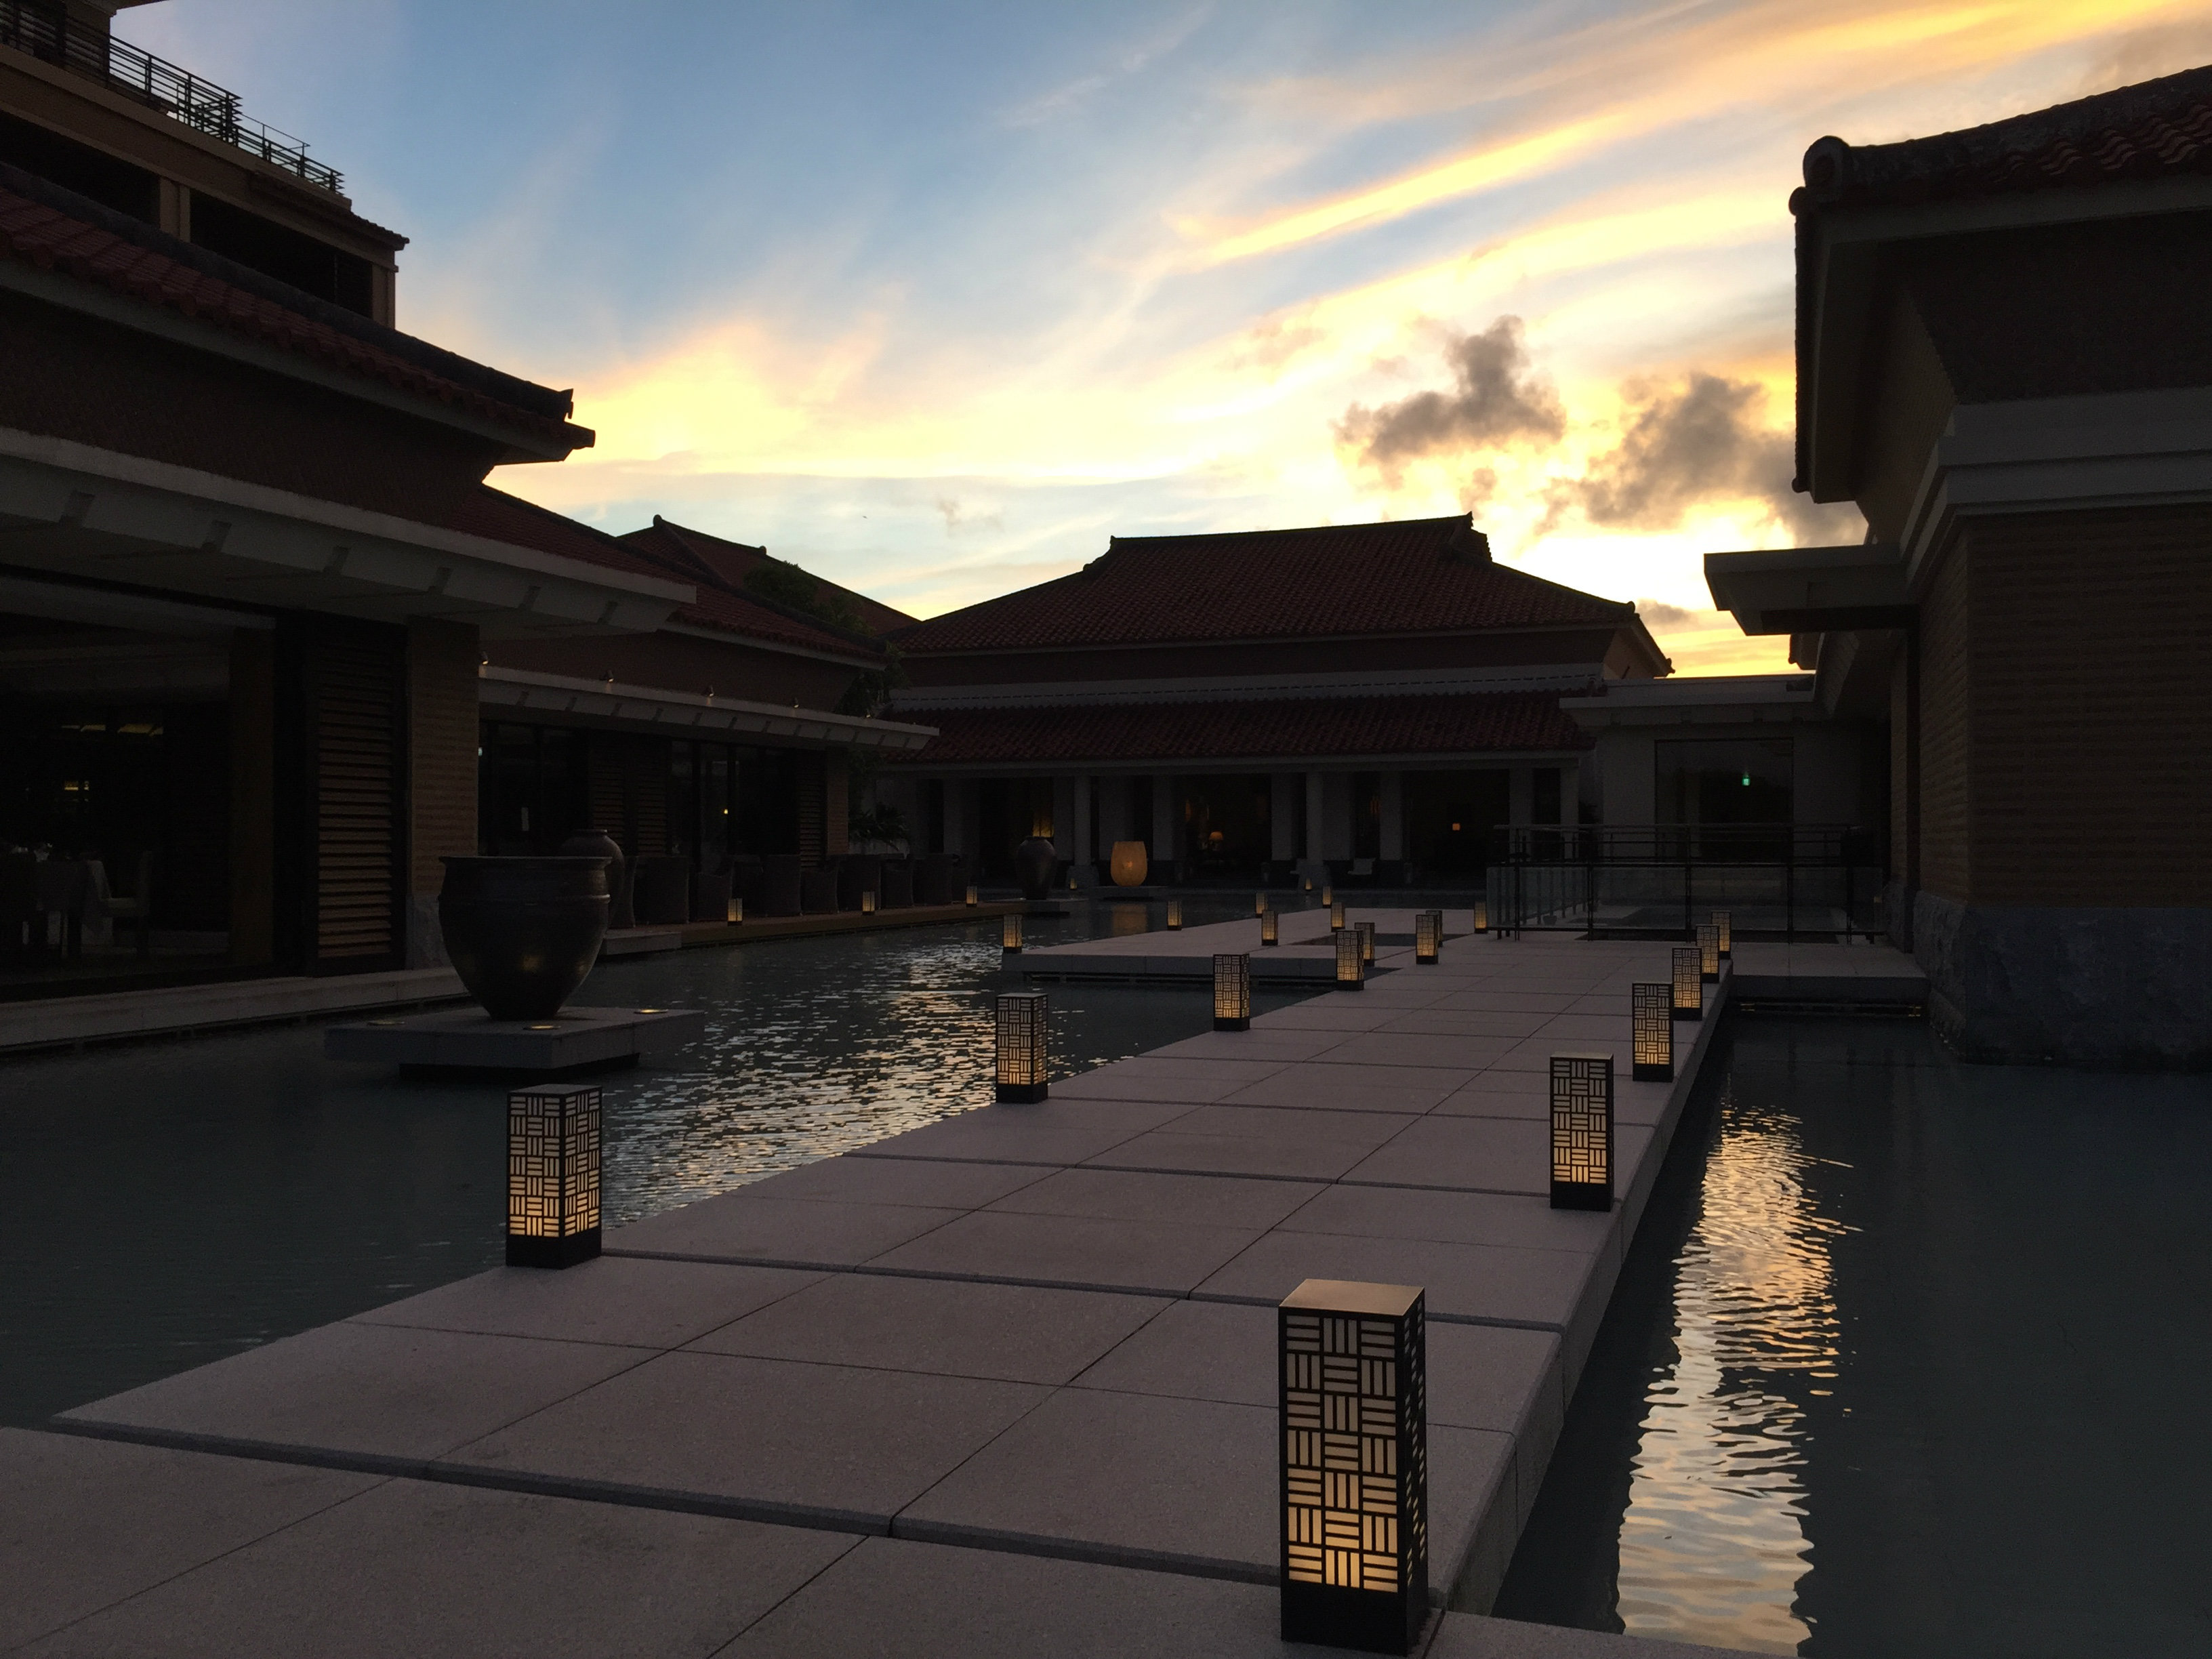 Ritz-Carlton Okinawa sunset